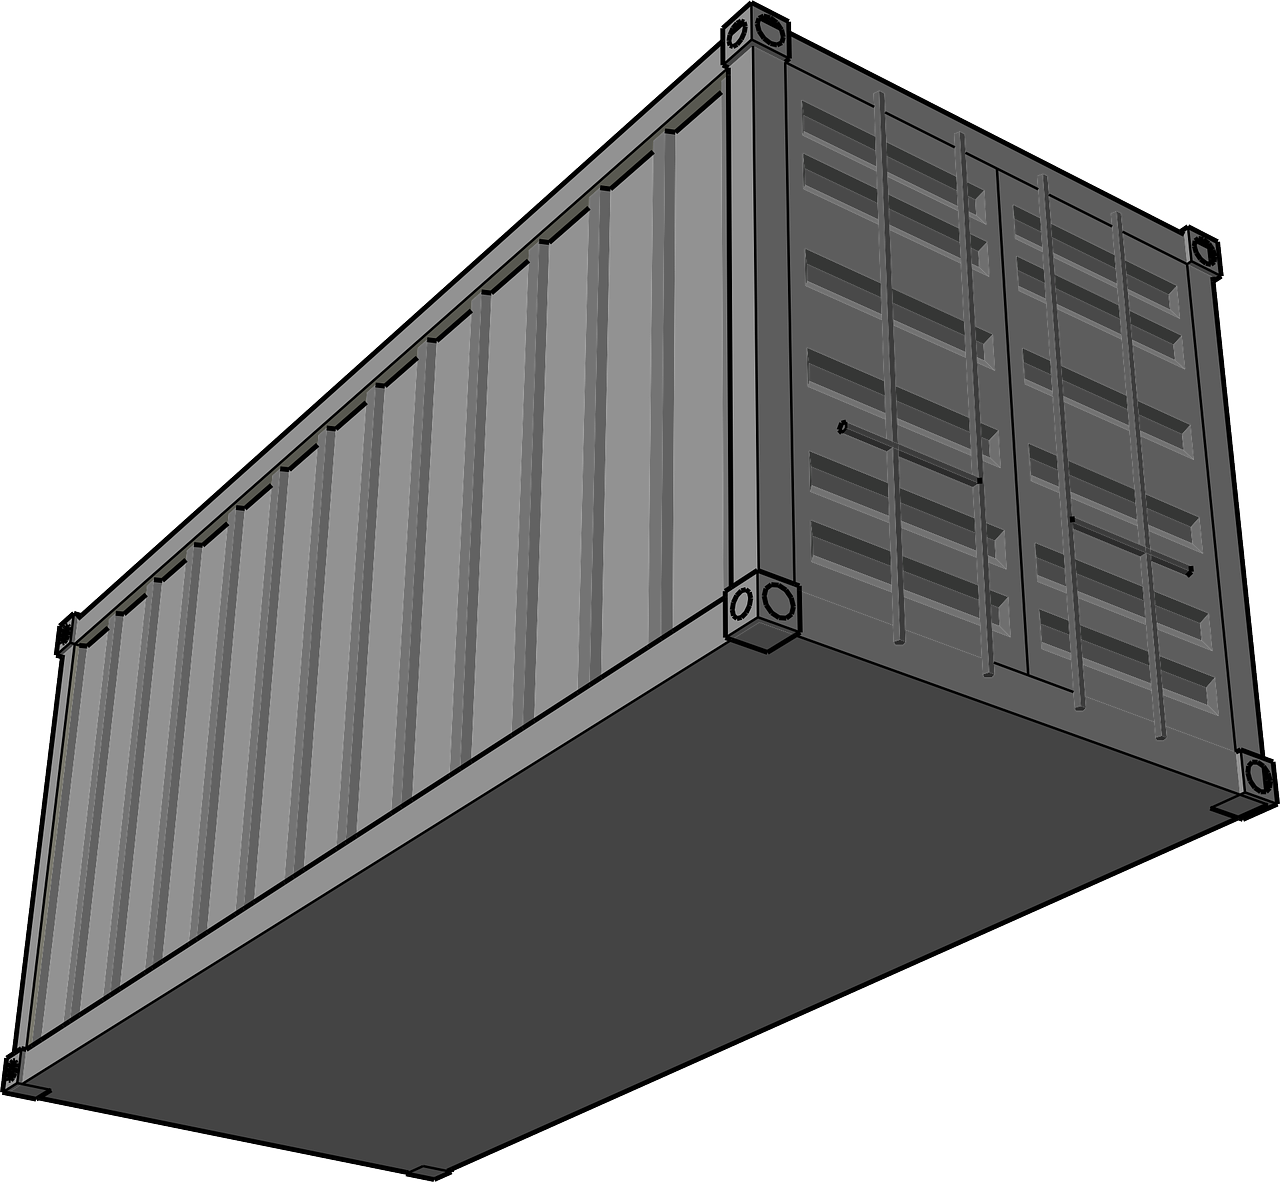 container-147973_1280